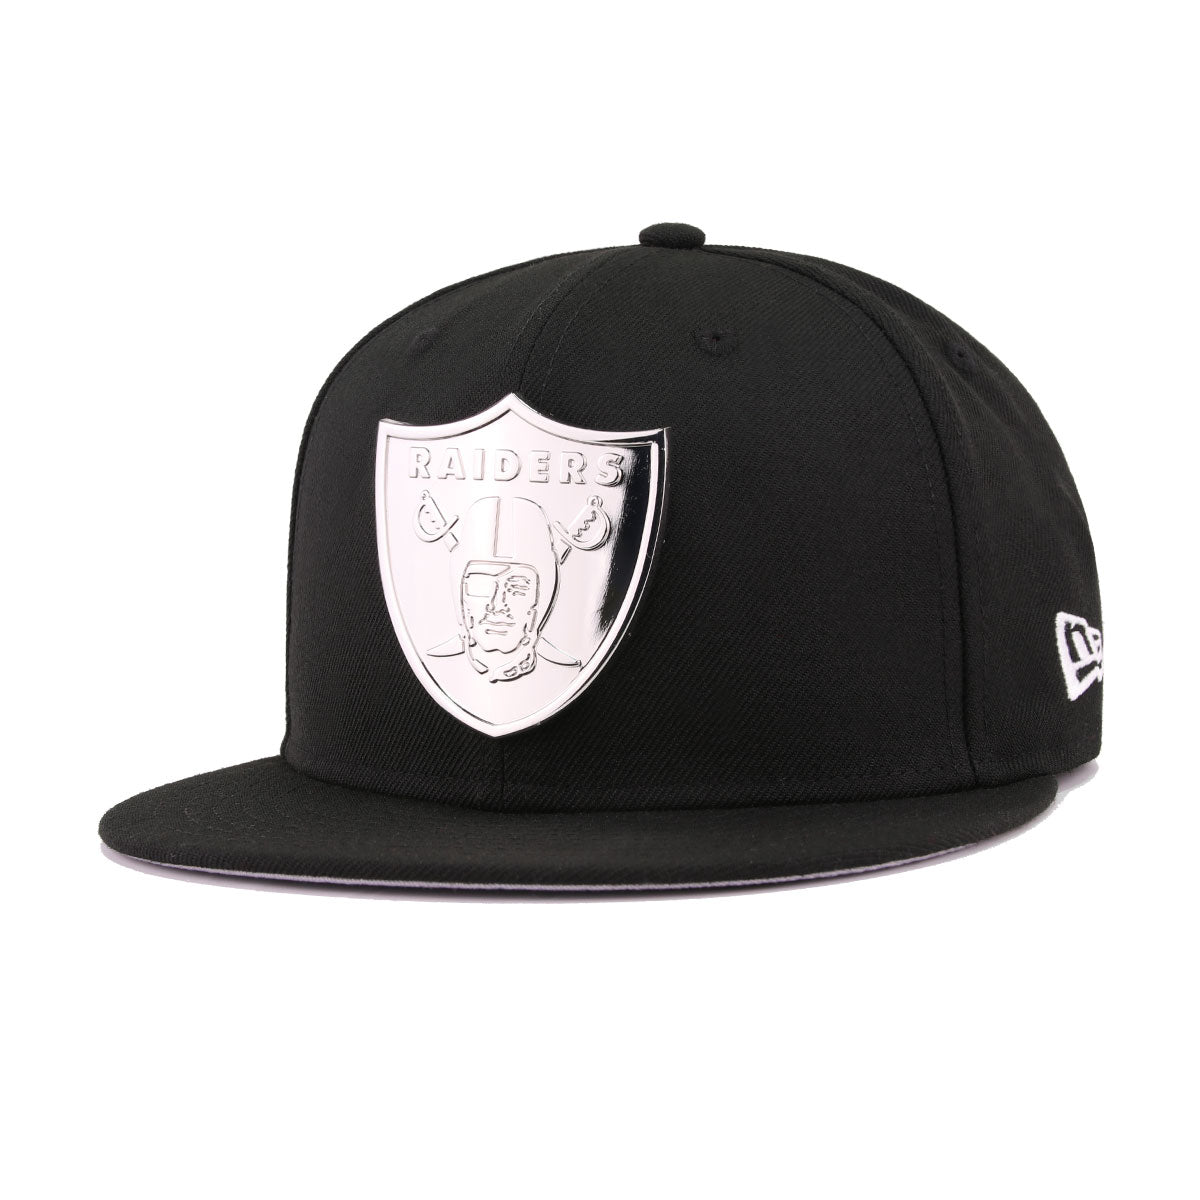 Las Vegas Raiders Black Silver Metal Badge New Era 59Fifty Fitted